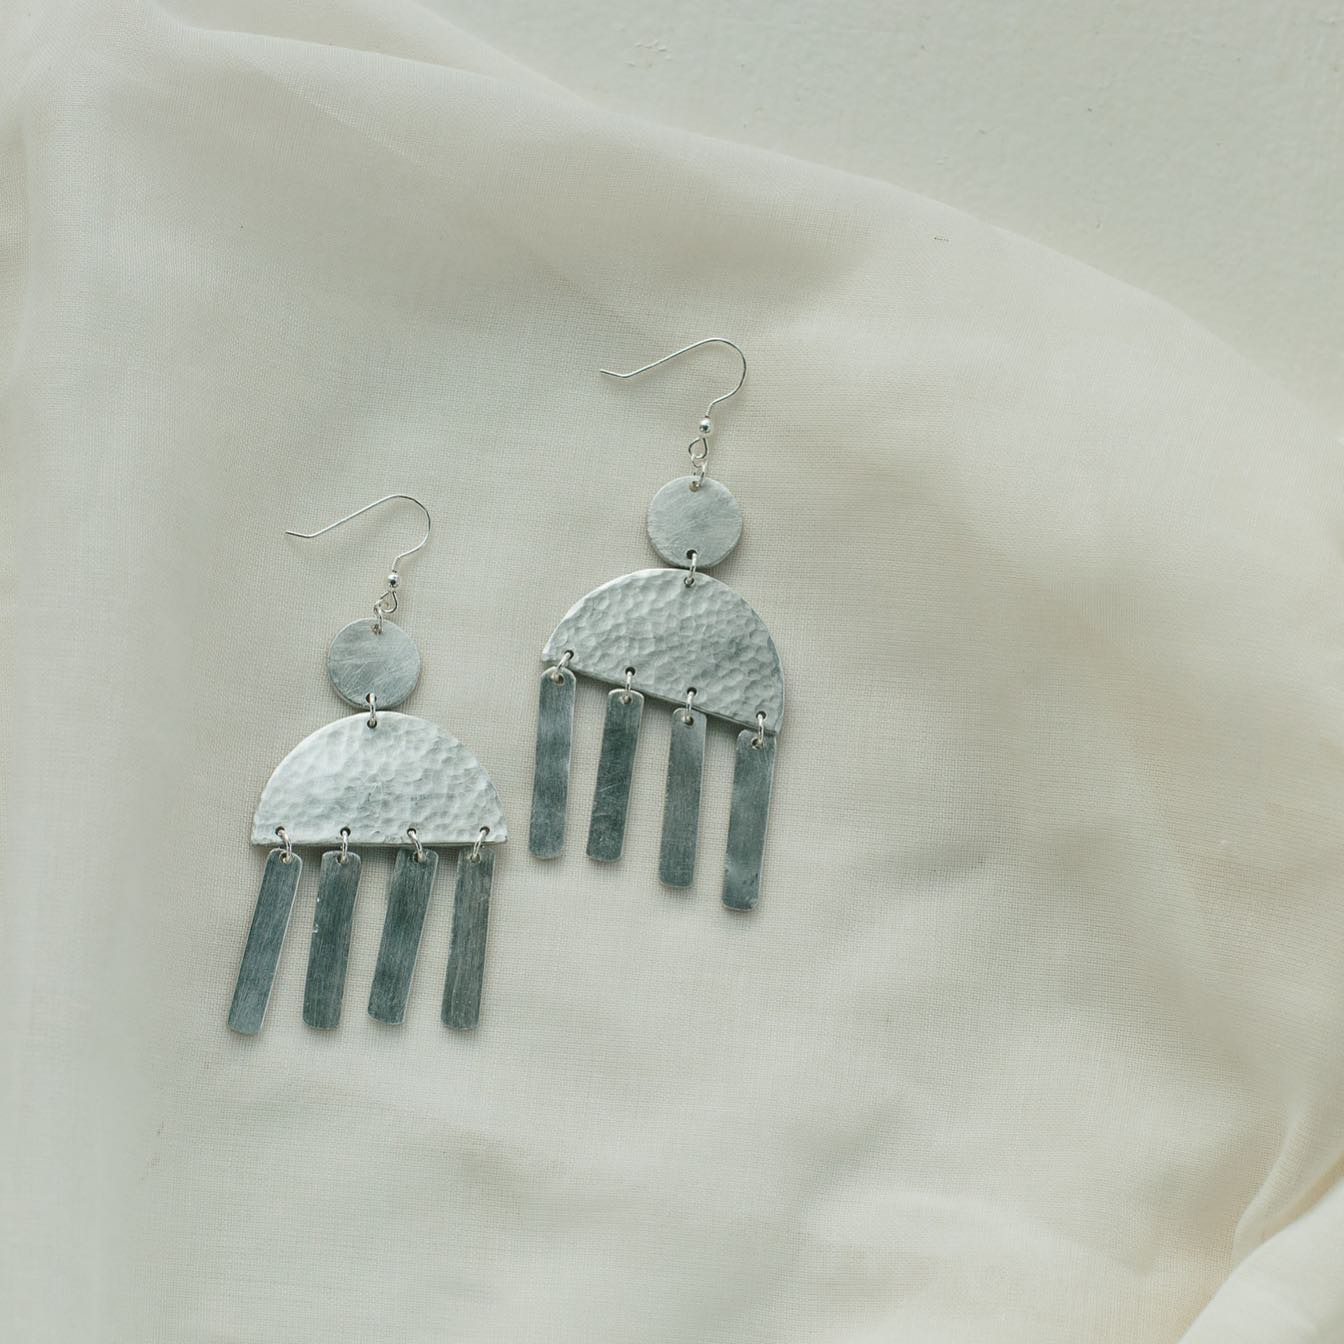 Aluminum Chandelier Earrings